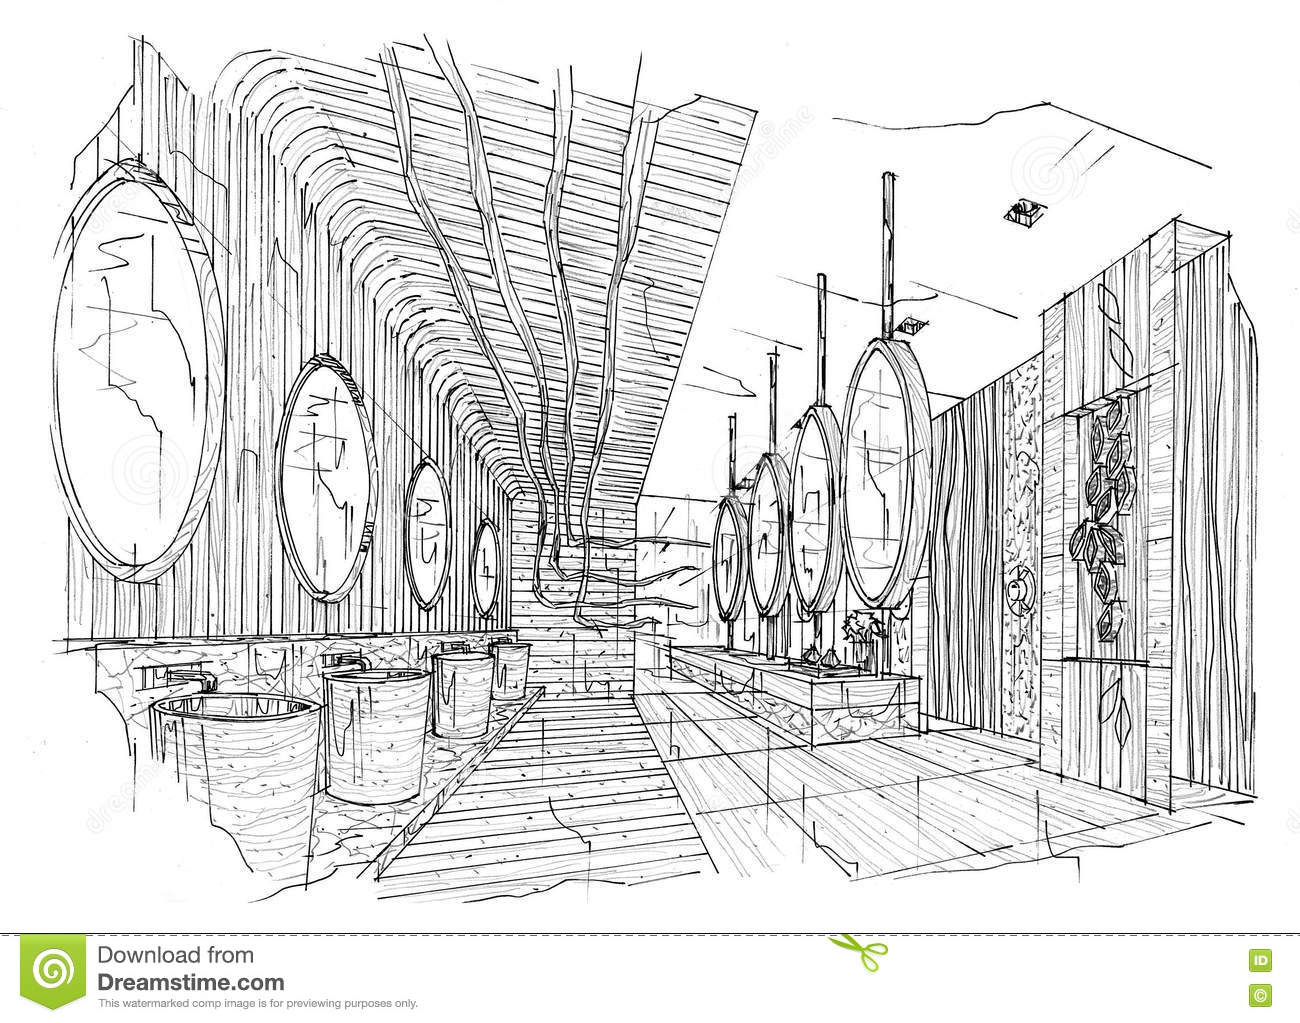 Bathroom perspective drawing - Sketch Interior Perspective Toilet Bathroom Black And White Interior Design